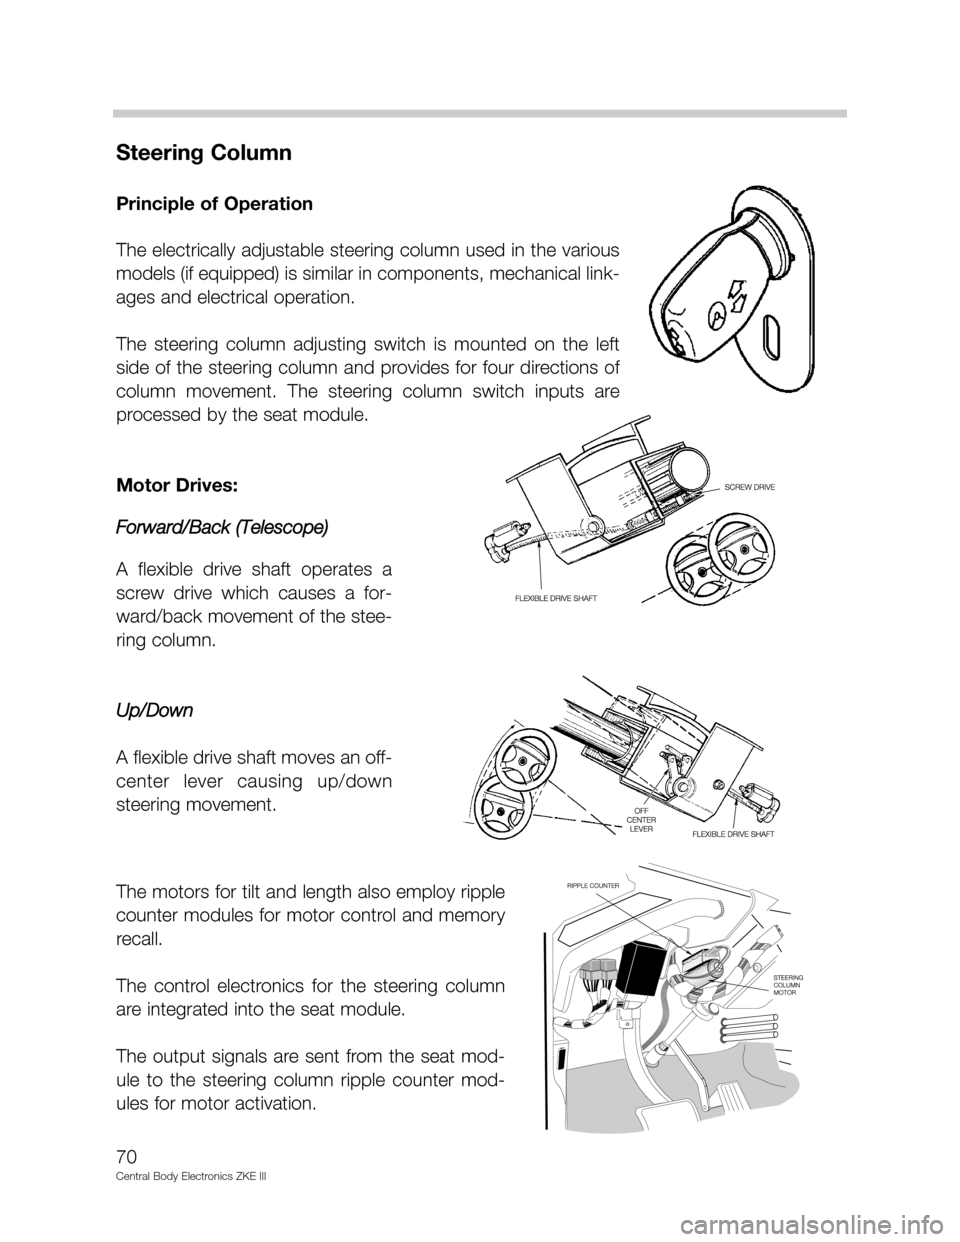 Bmw X5 Manual Auto Electrical Wiring Diagram 2003 E53 Central Body Electronics Zke